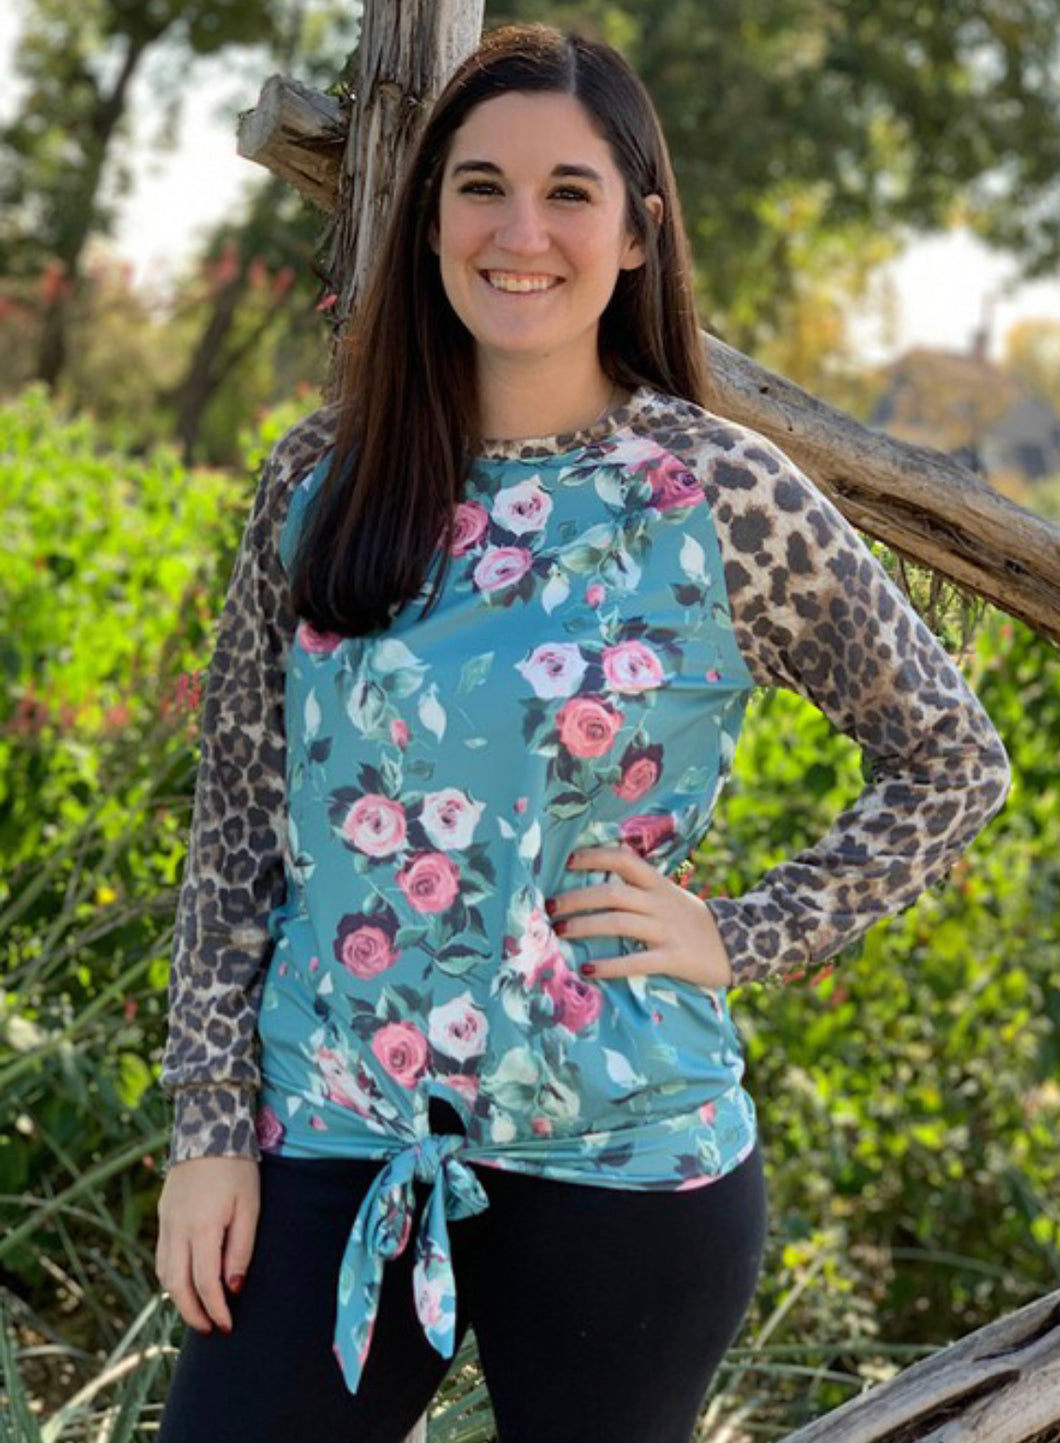 Mommy & Me Rose Printed Knot Top with Leopard Sleeves